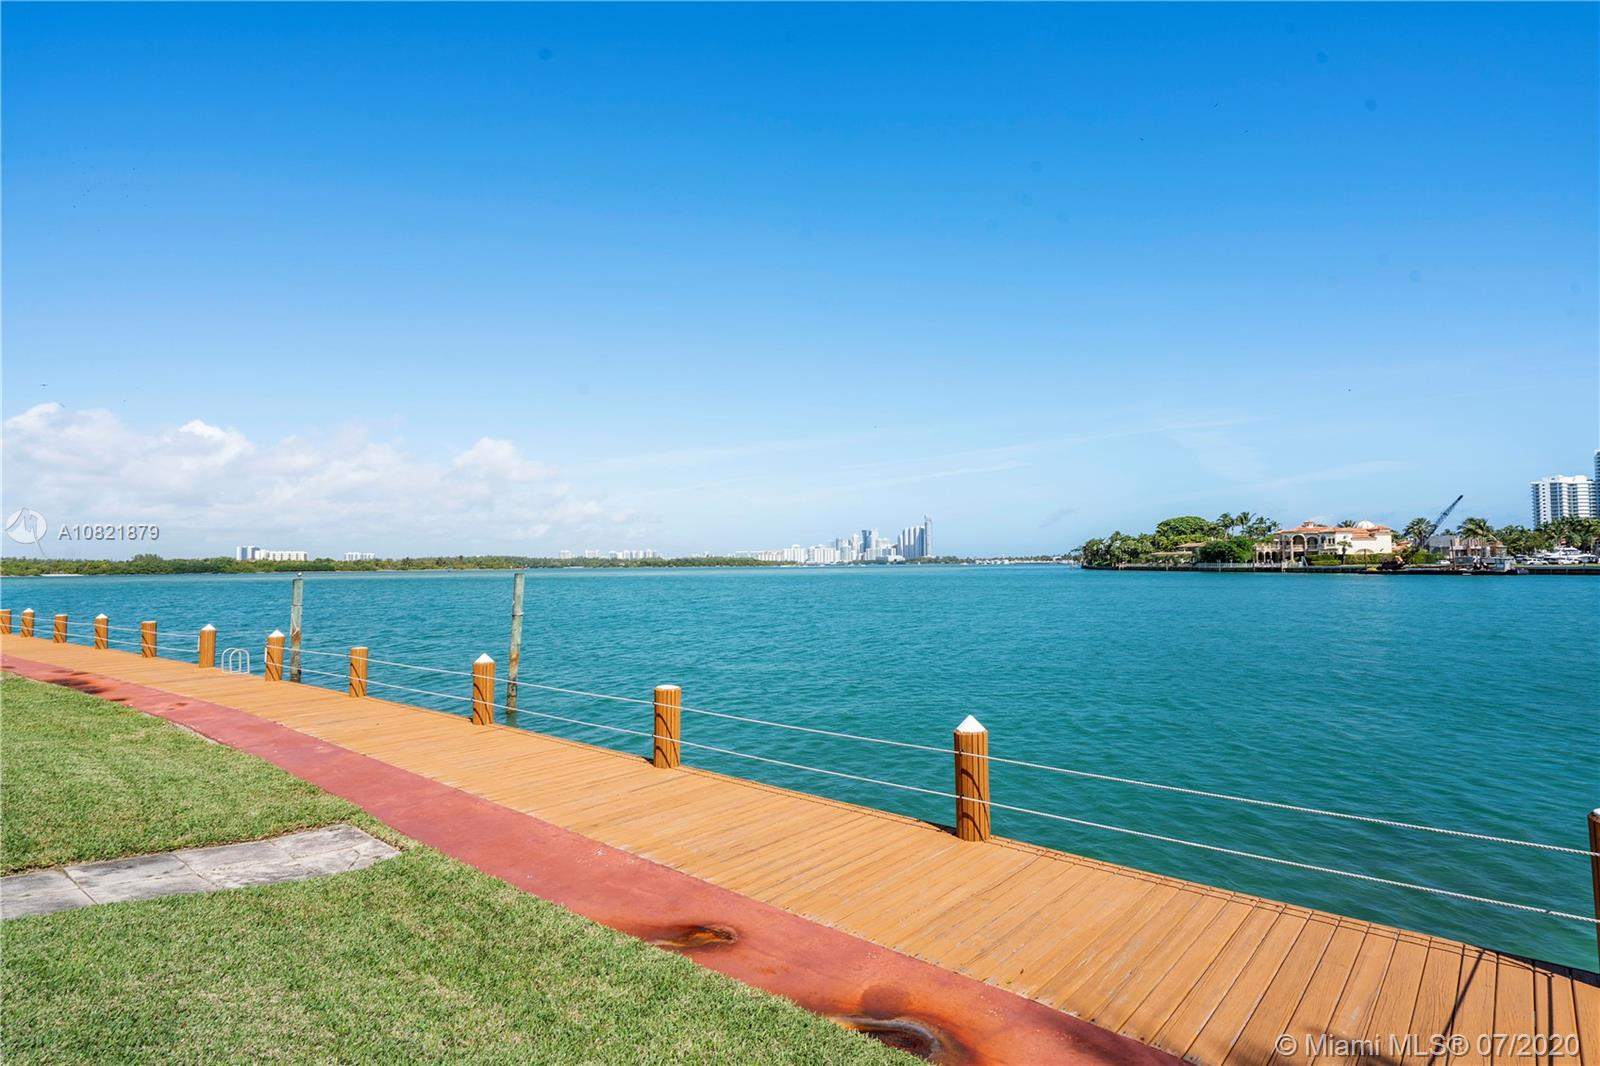 Updated 1 Bedroom 1 Bathroom in boutique style building with waterfront pool, deck and gardens. Unit is located on the 2nd floor of the building. Unit has updated kitchen with brand new appliances. Views of Biscayne Bay. Lots of cabinet space. New wall AC units. Walking Distance to Bal Harbour Shops, A+ Schools, Restaurants and Beaches. No Boats on Deck per Association. Laundry on premises. Cats allowed, No Dogs. Unit is currently rented for $1,350 per month through April 1st, 2021.